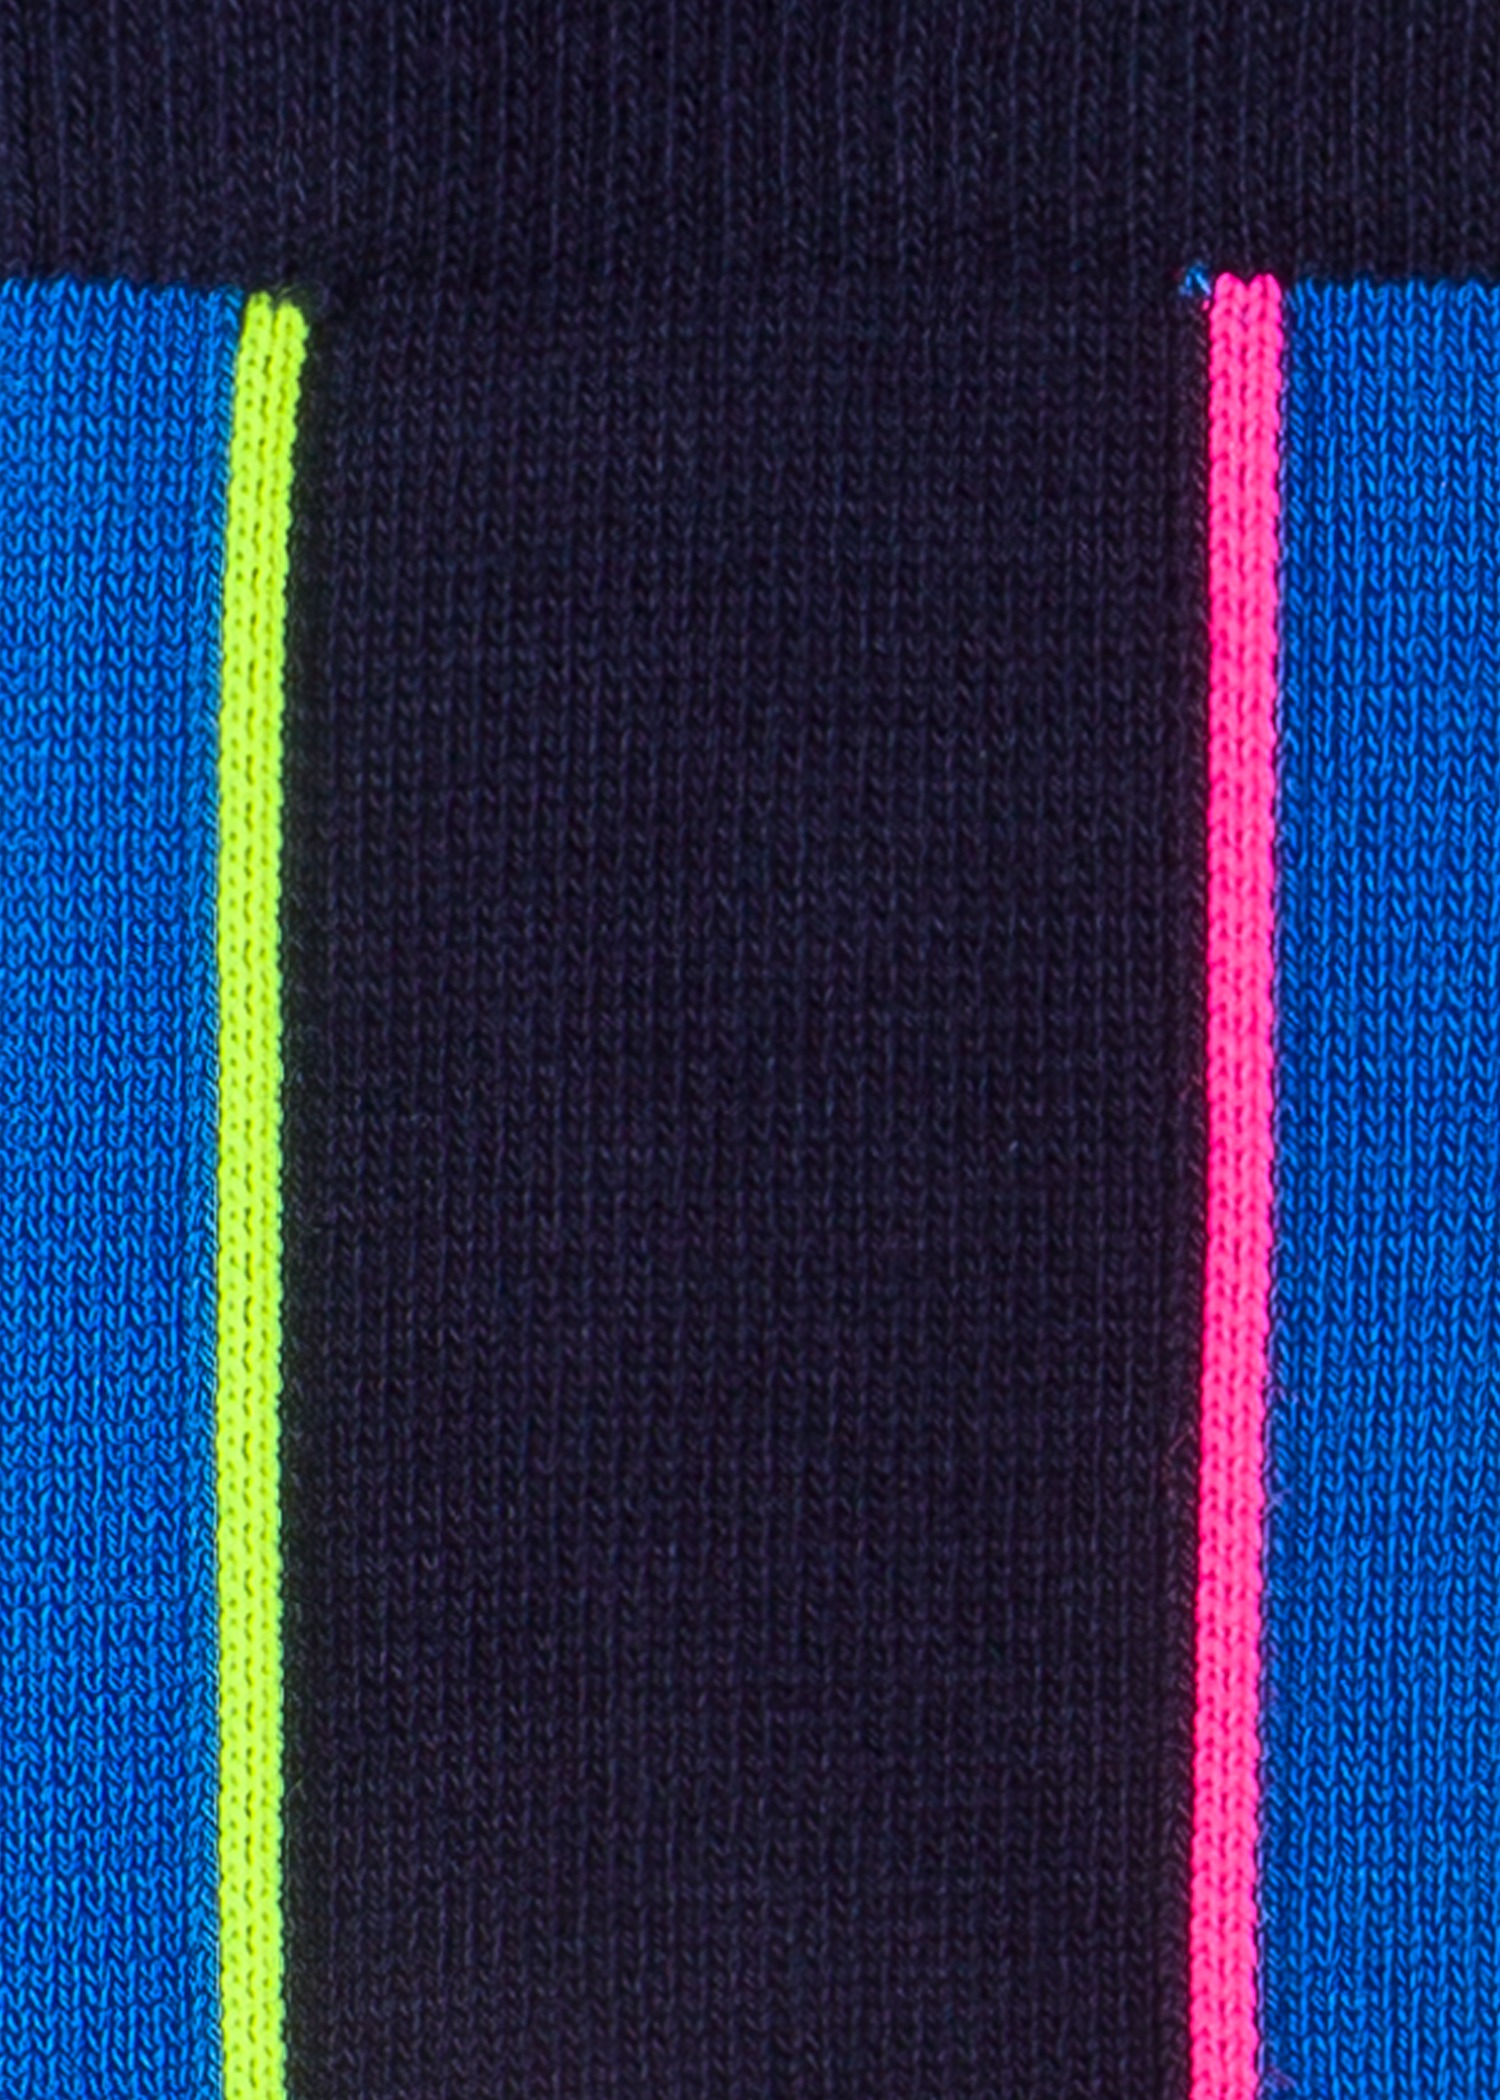 b2167a8dd89 Detailed View - Men s Navy And Indigo Vertical Stripe Socks Paul Smith